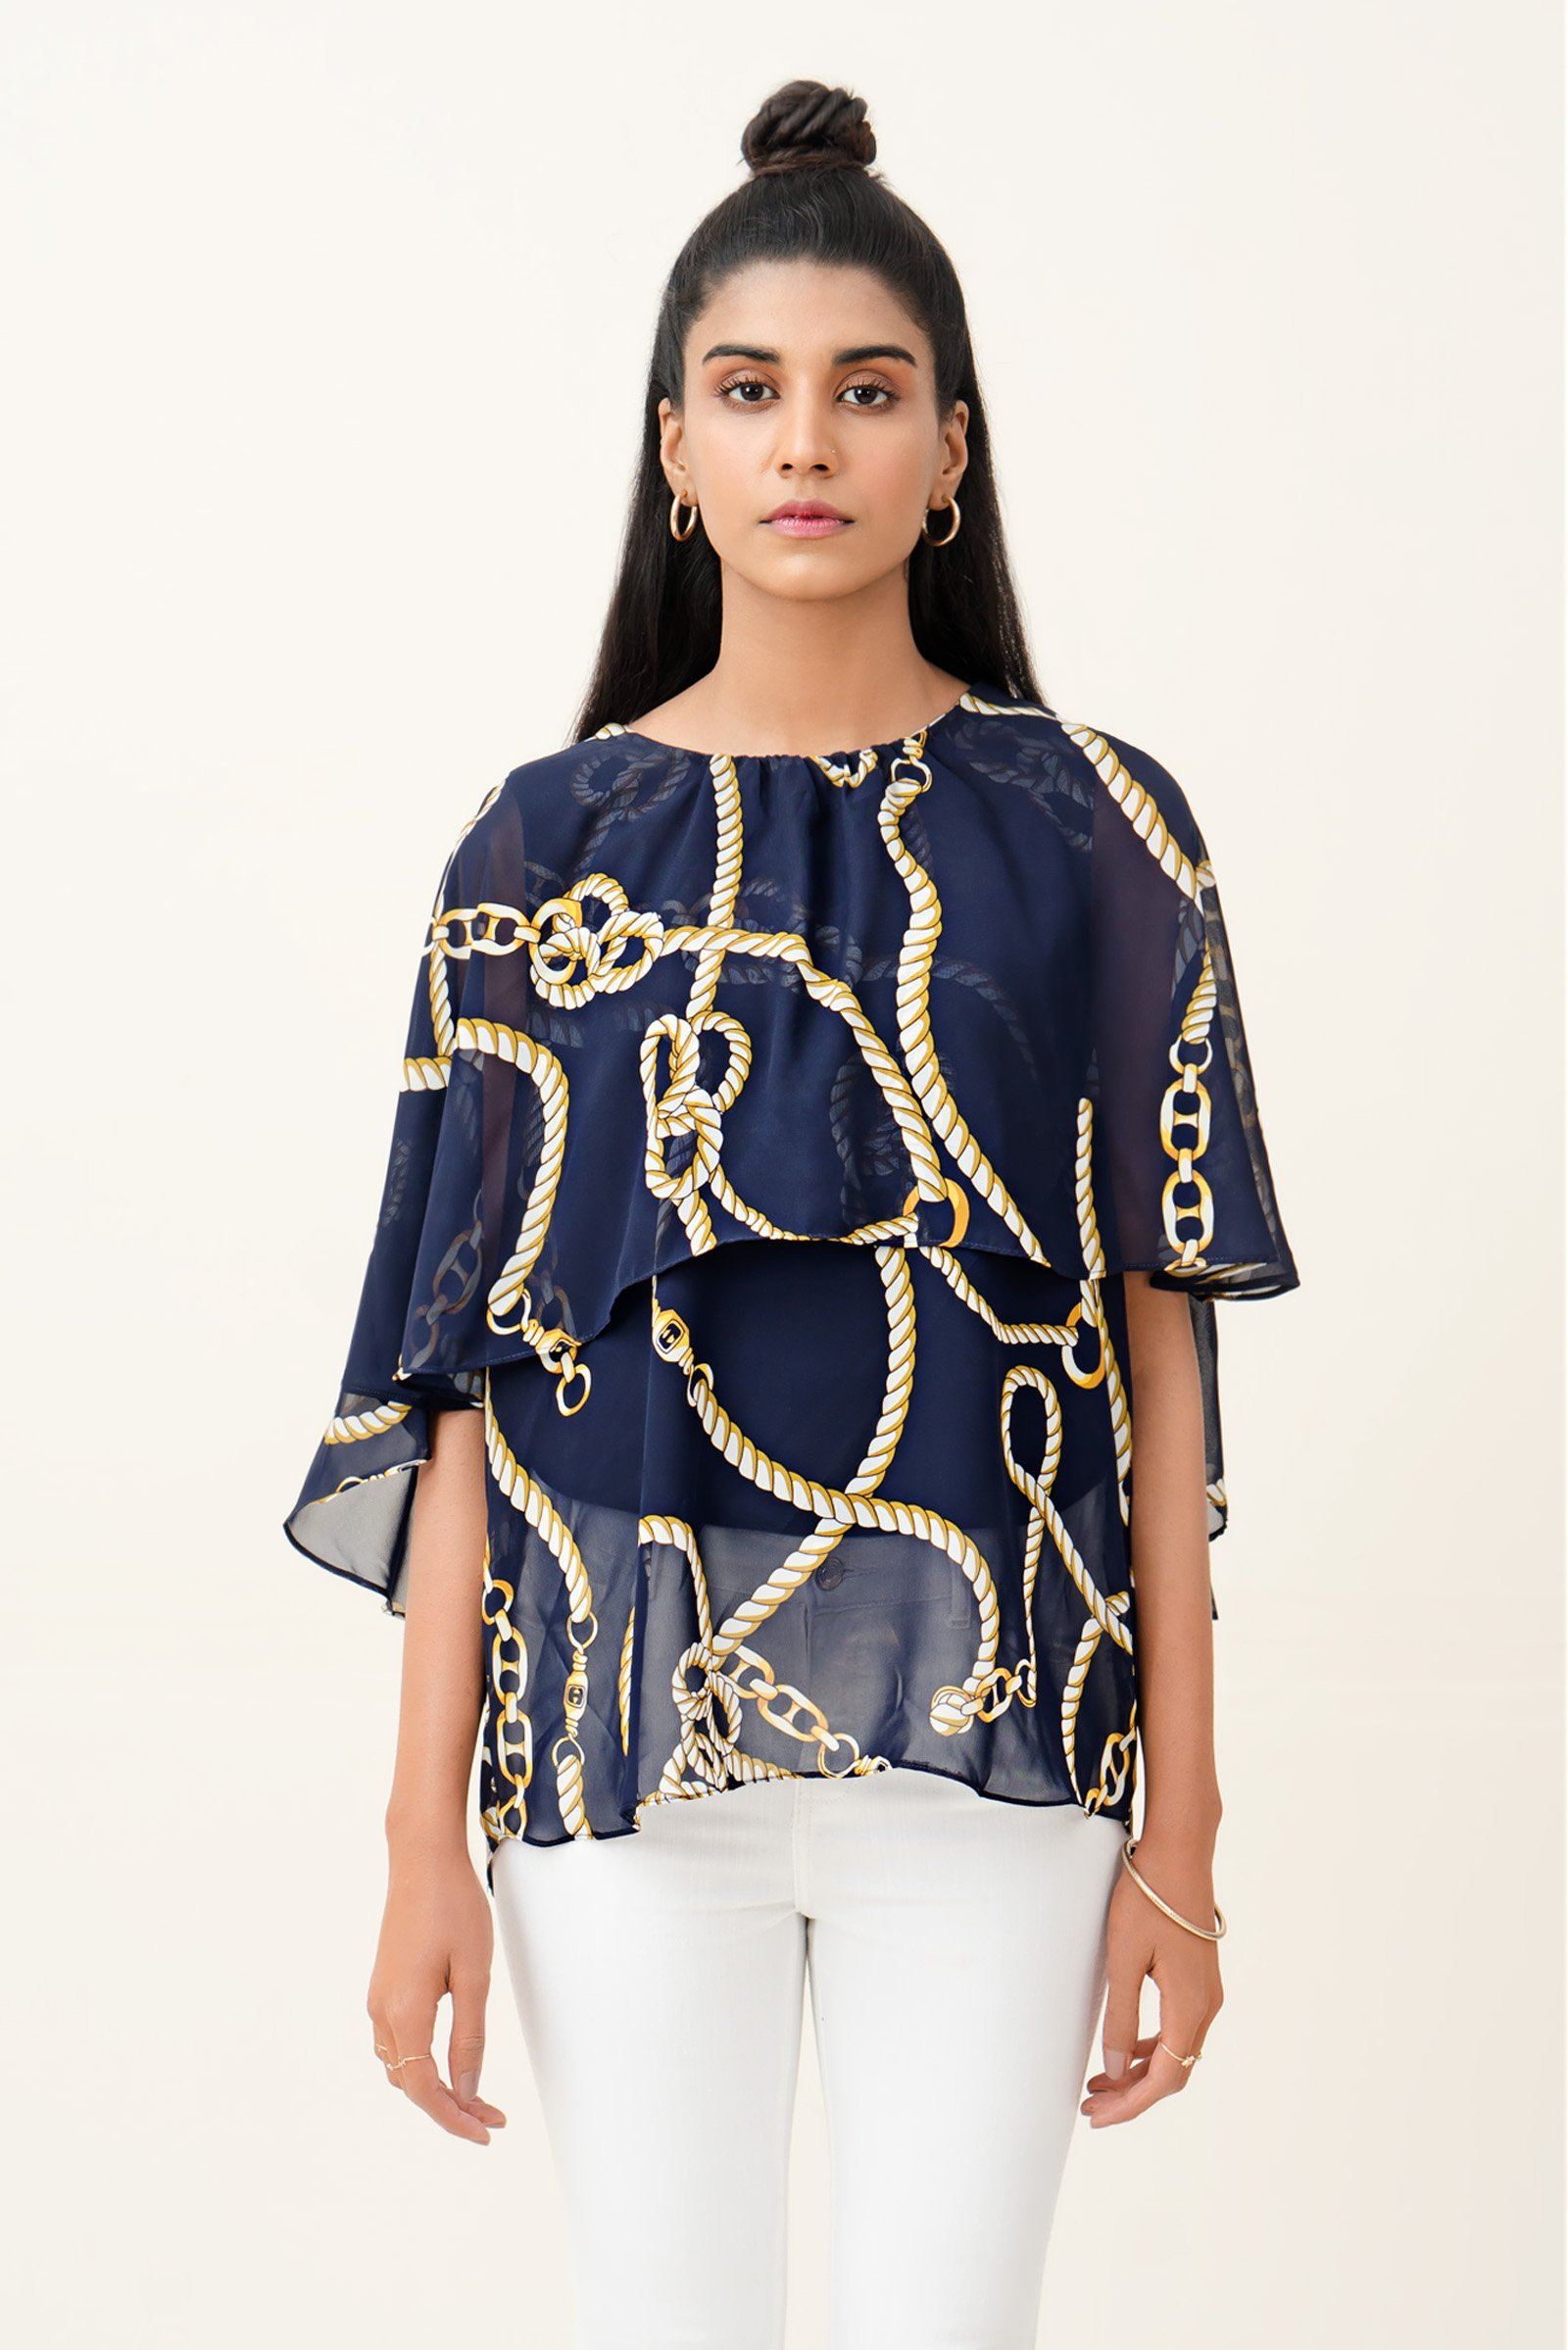 Outfitters Chain Printed Top